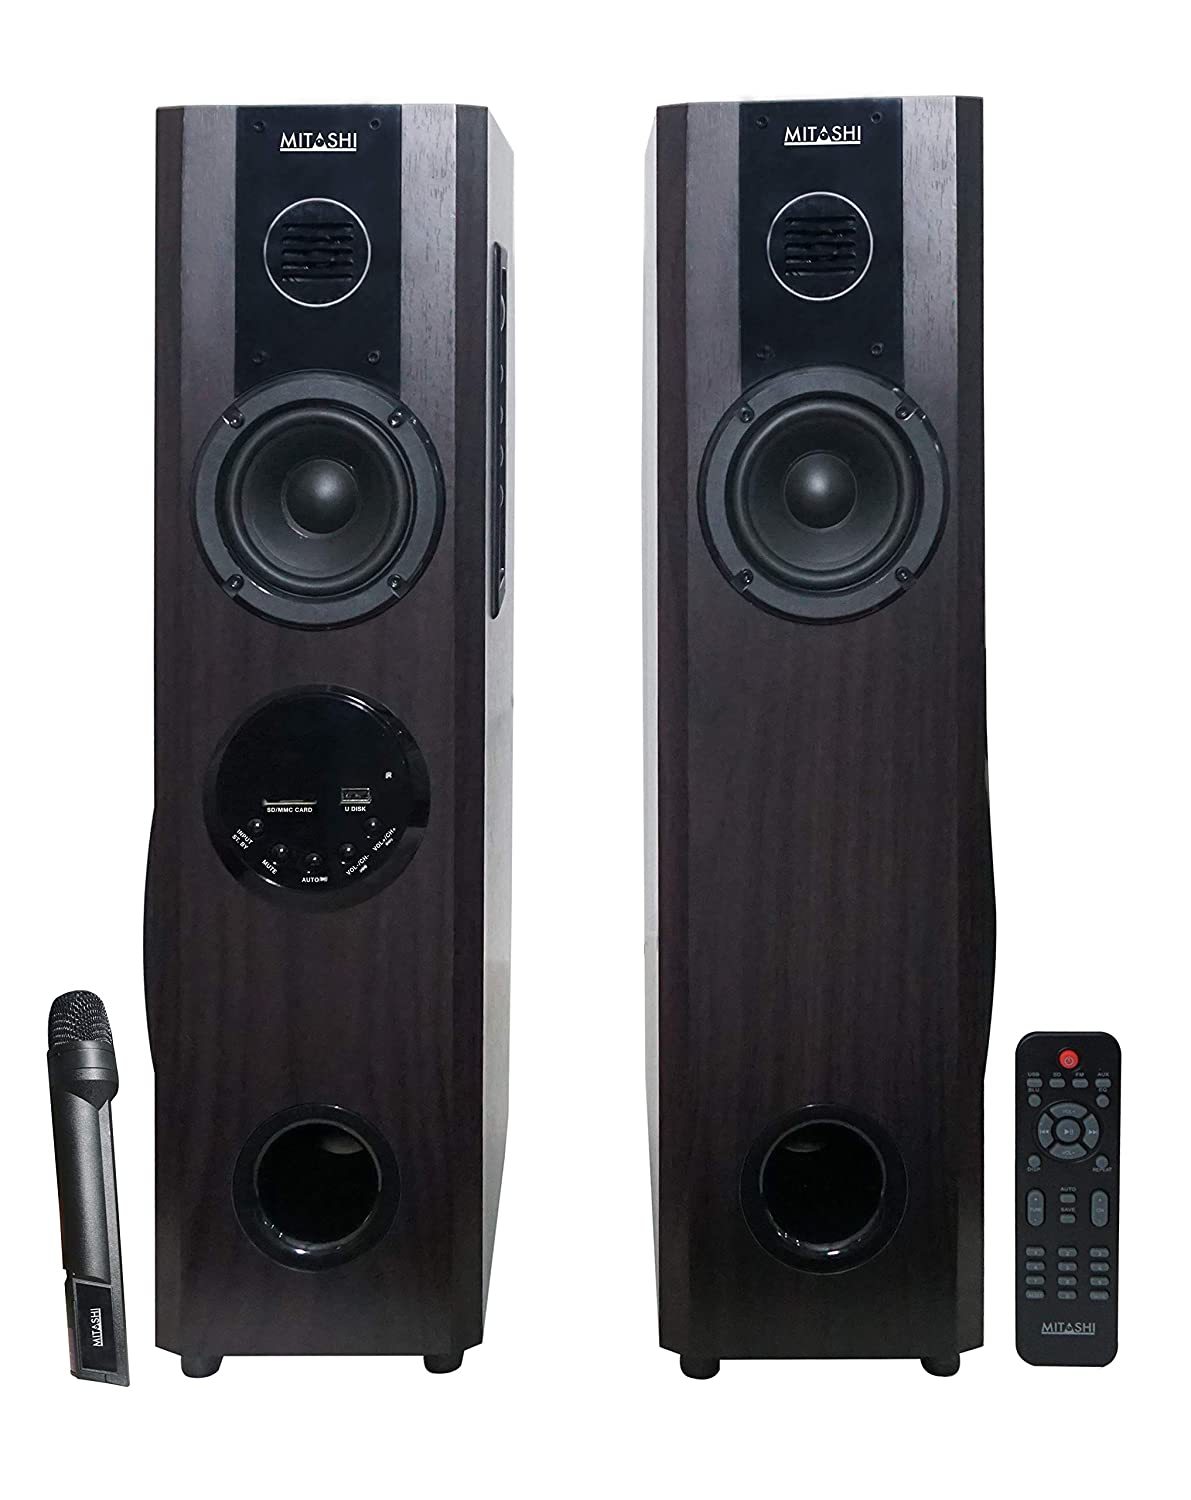 Mitashi TWR 60 Fur 2.0 Channel 5000 Watts PMPO Tower Speaker